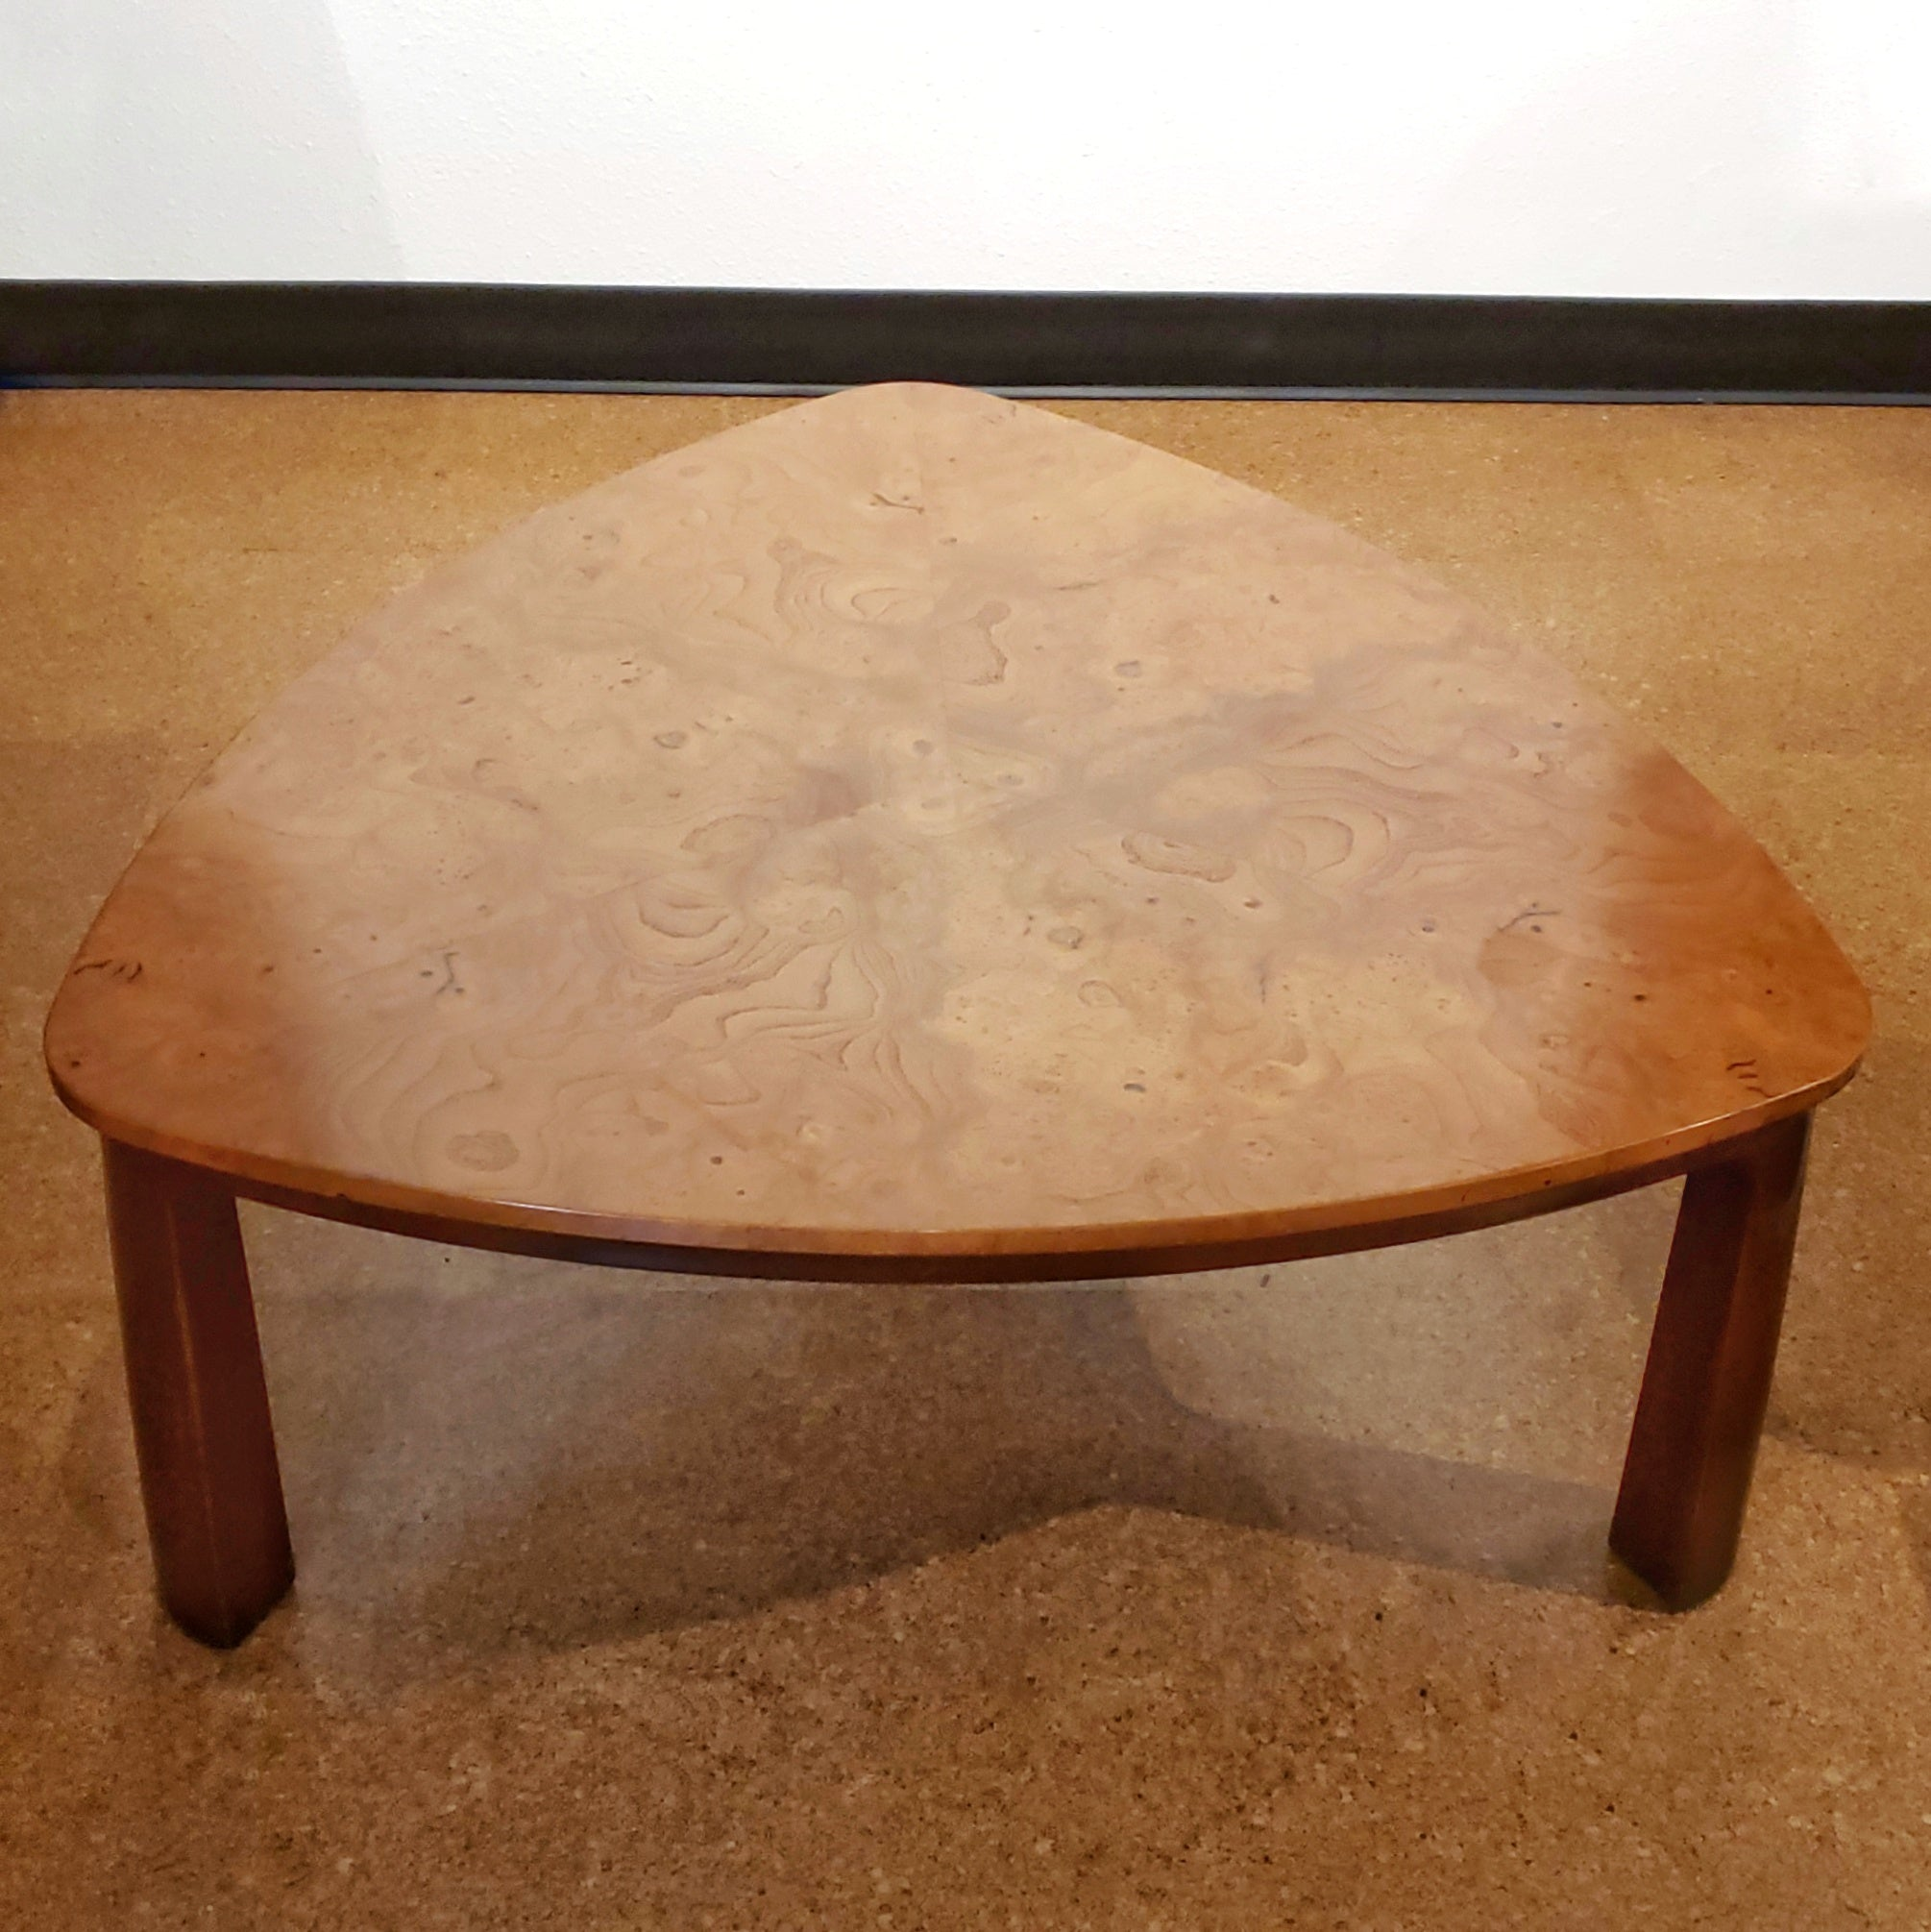 EDWARD WORMLEY COFFEE TABLE 5214 FOR DUNBAR